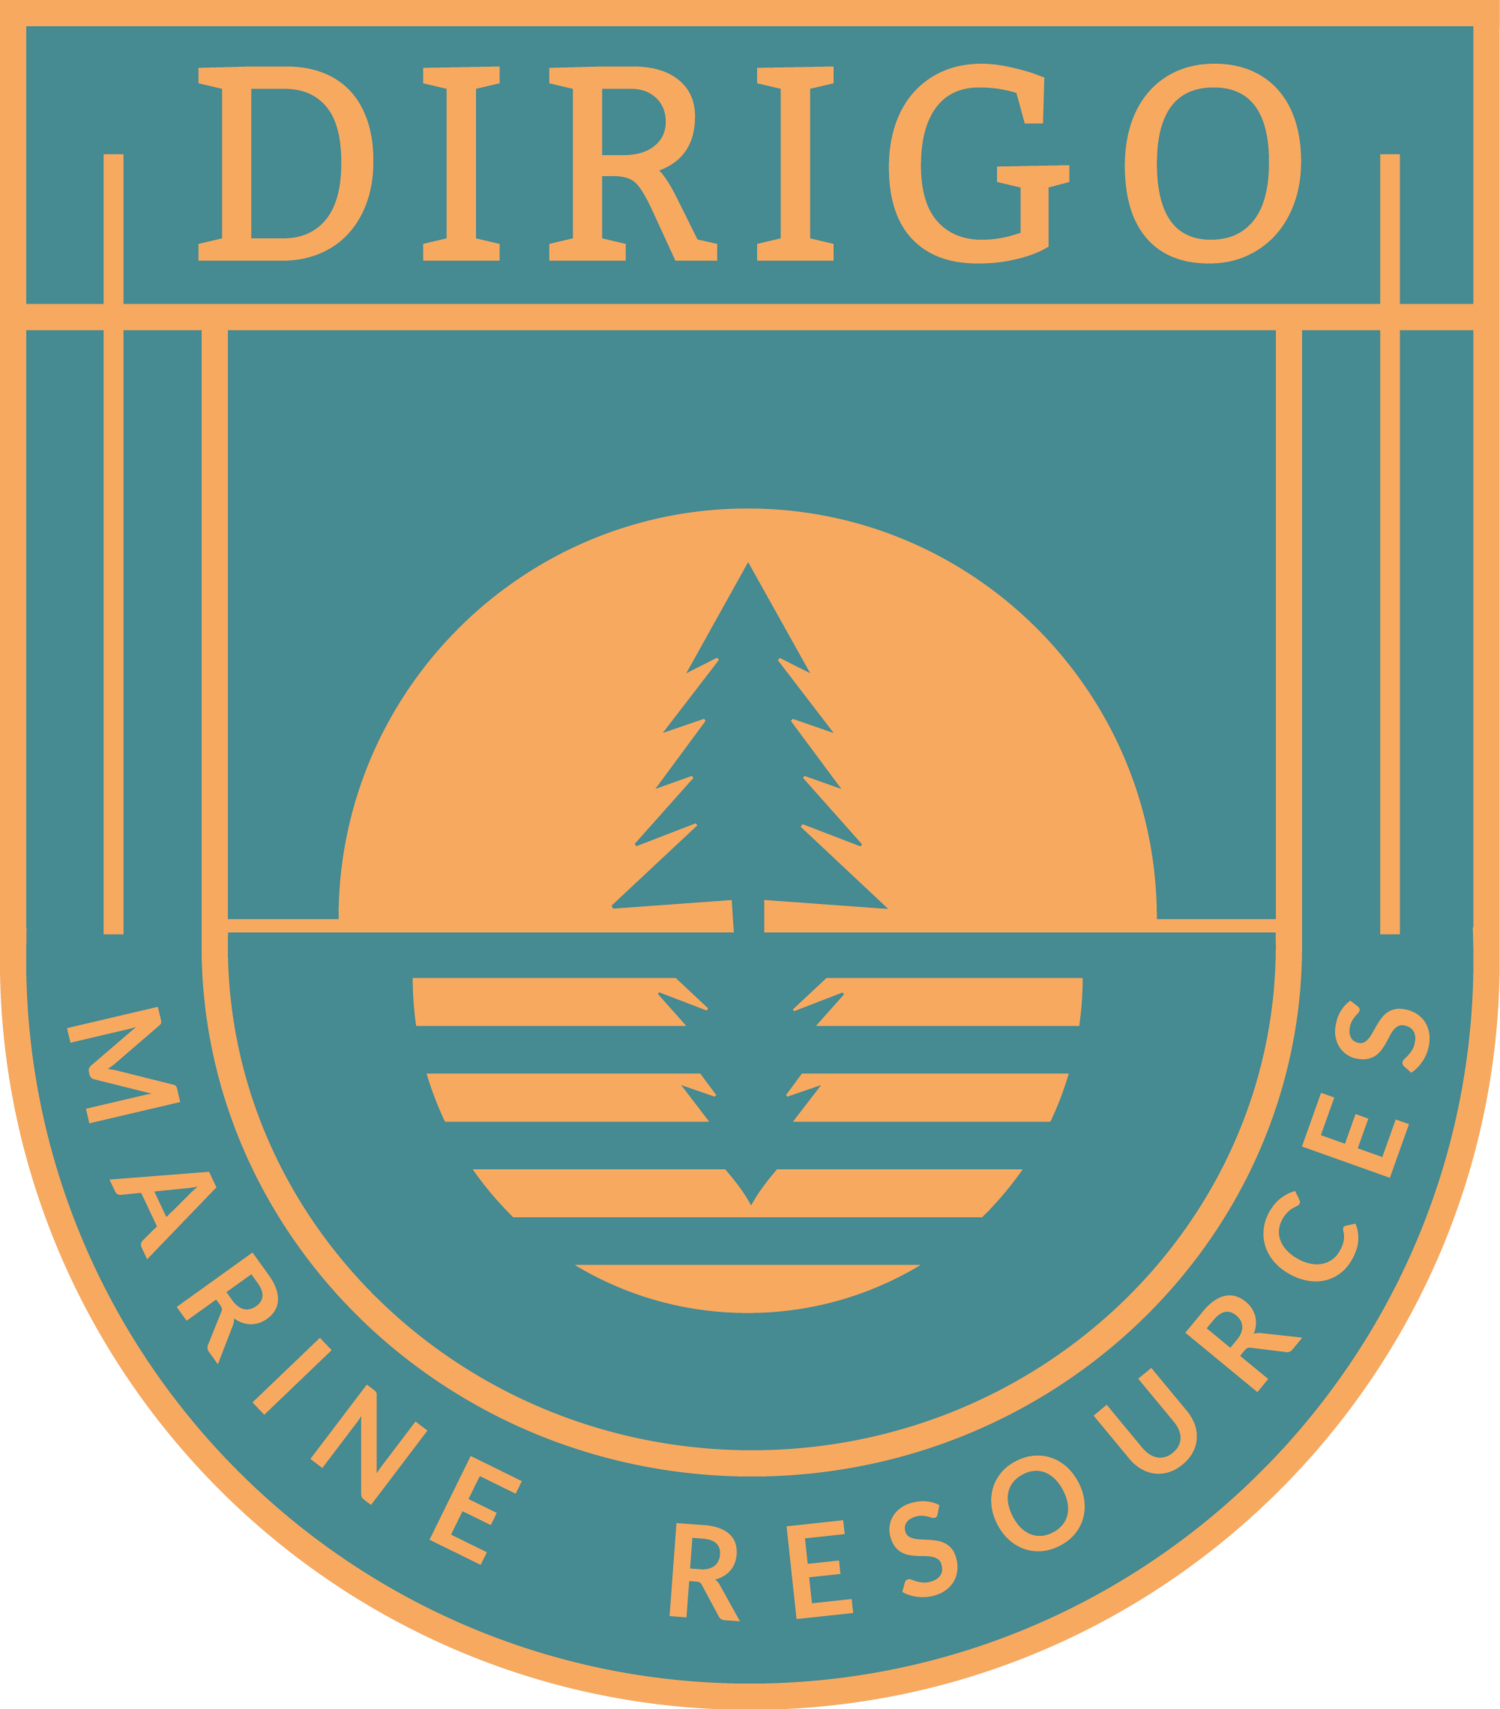 Dirigo Marine Resources